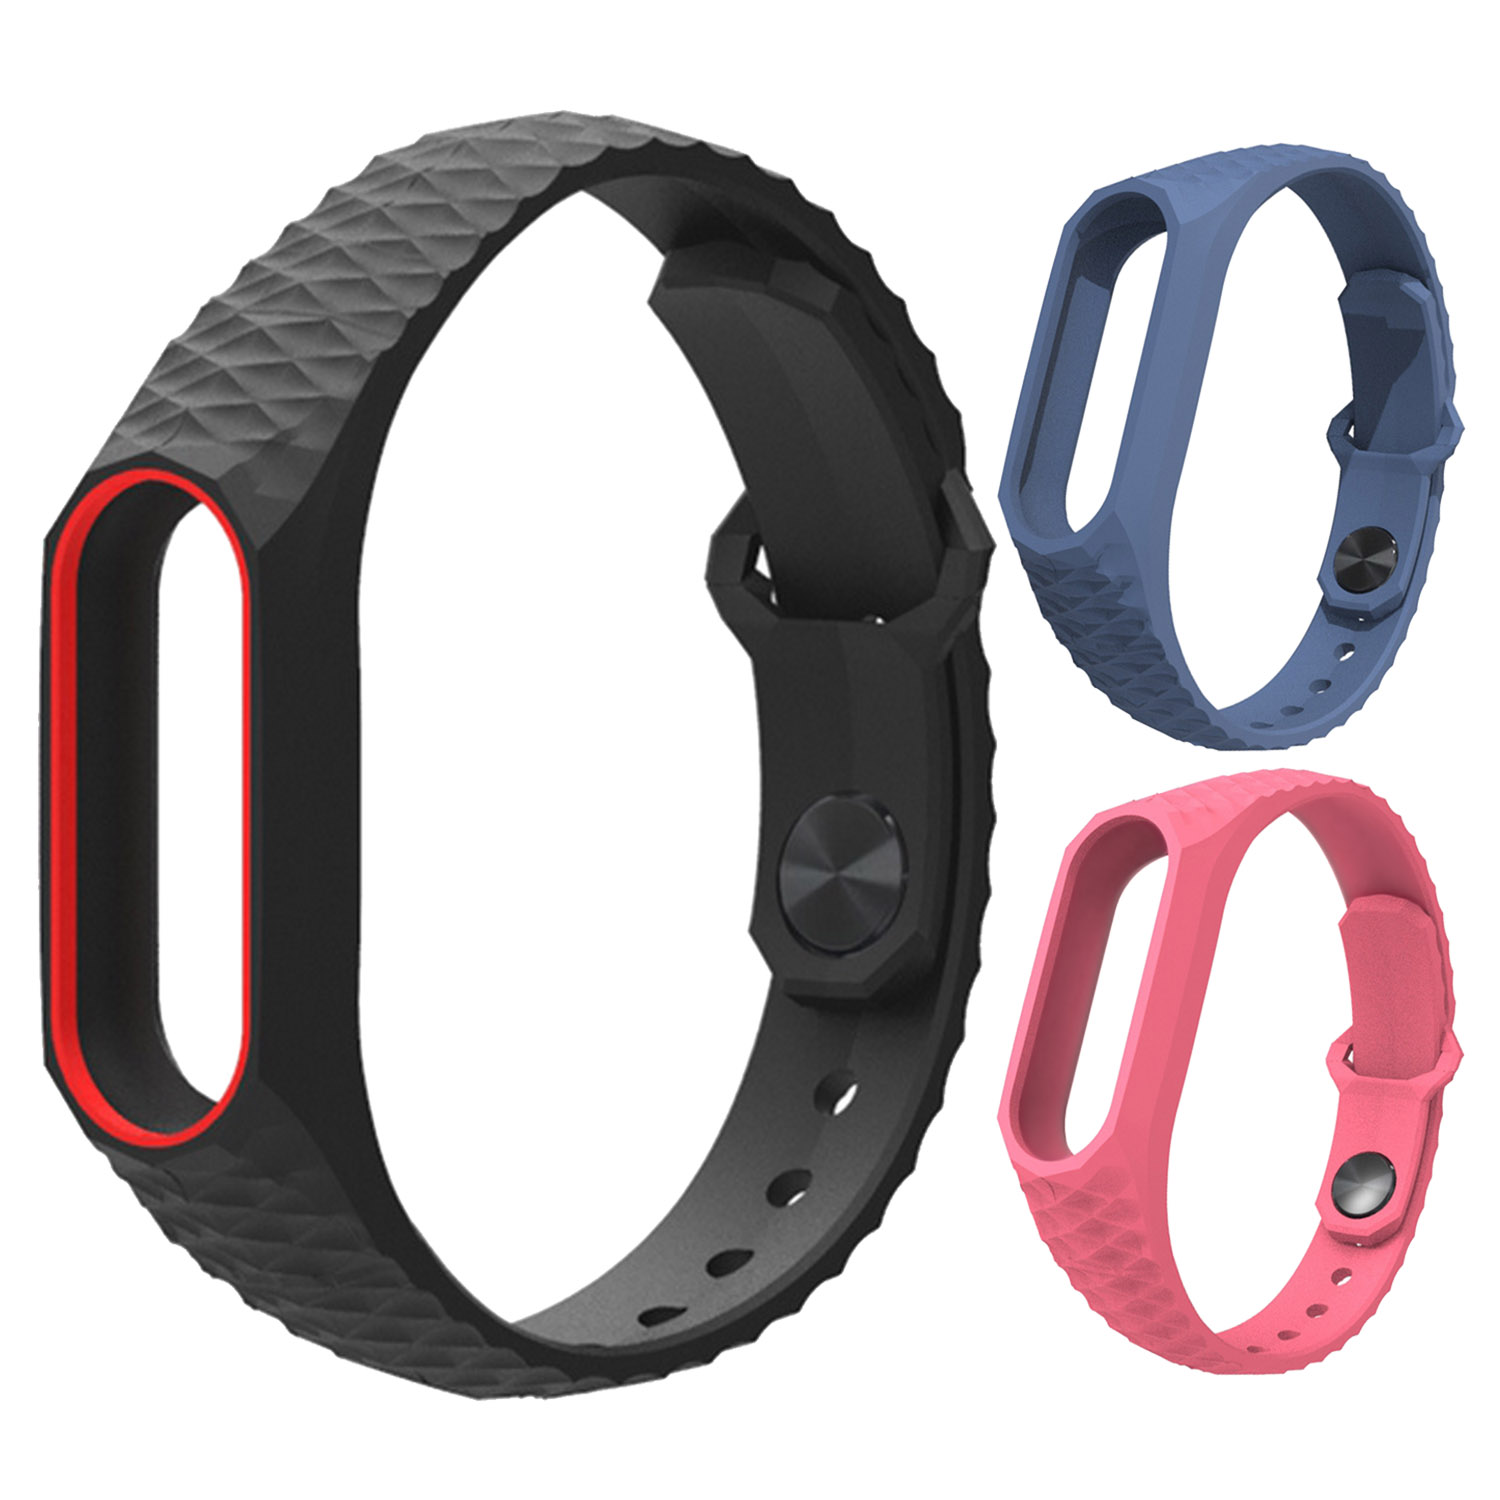 Gosear Silicone Diamond Style Replacement Smart Wristband Strap Bracelet for <font><b>Xiaomi</b></font> Xiomi Xiao Mi Band <font><b>Miband</b></font> <font><b>2</b></font> Band2 Accessory image